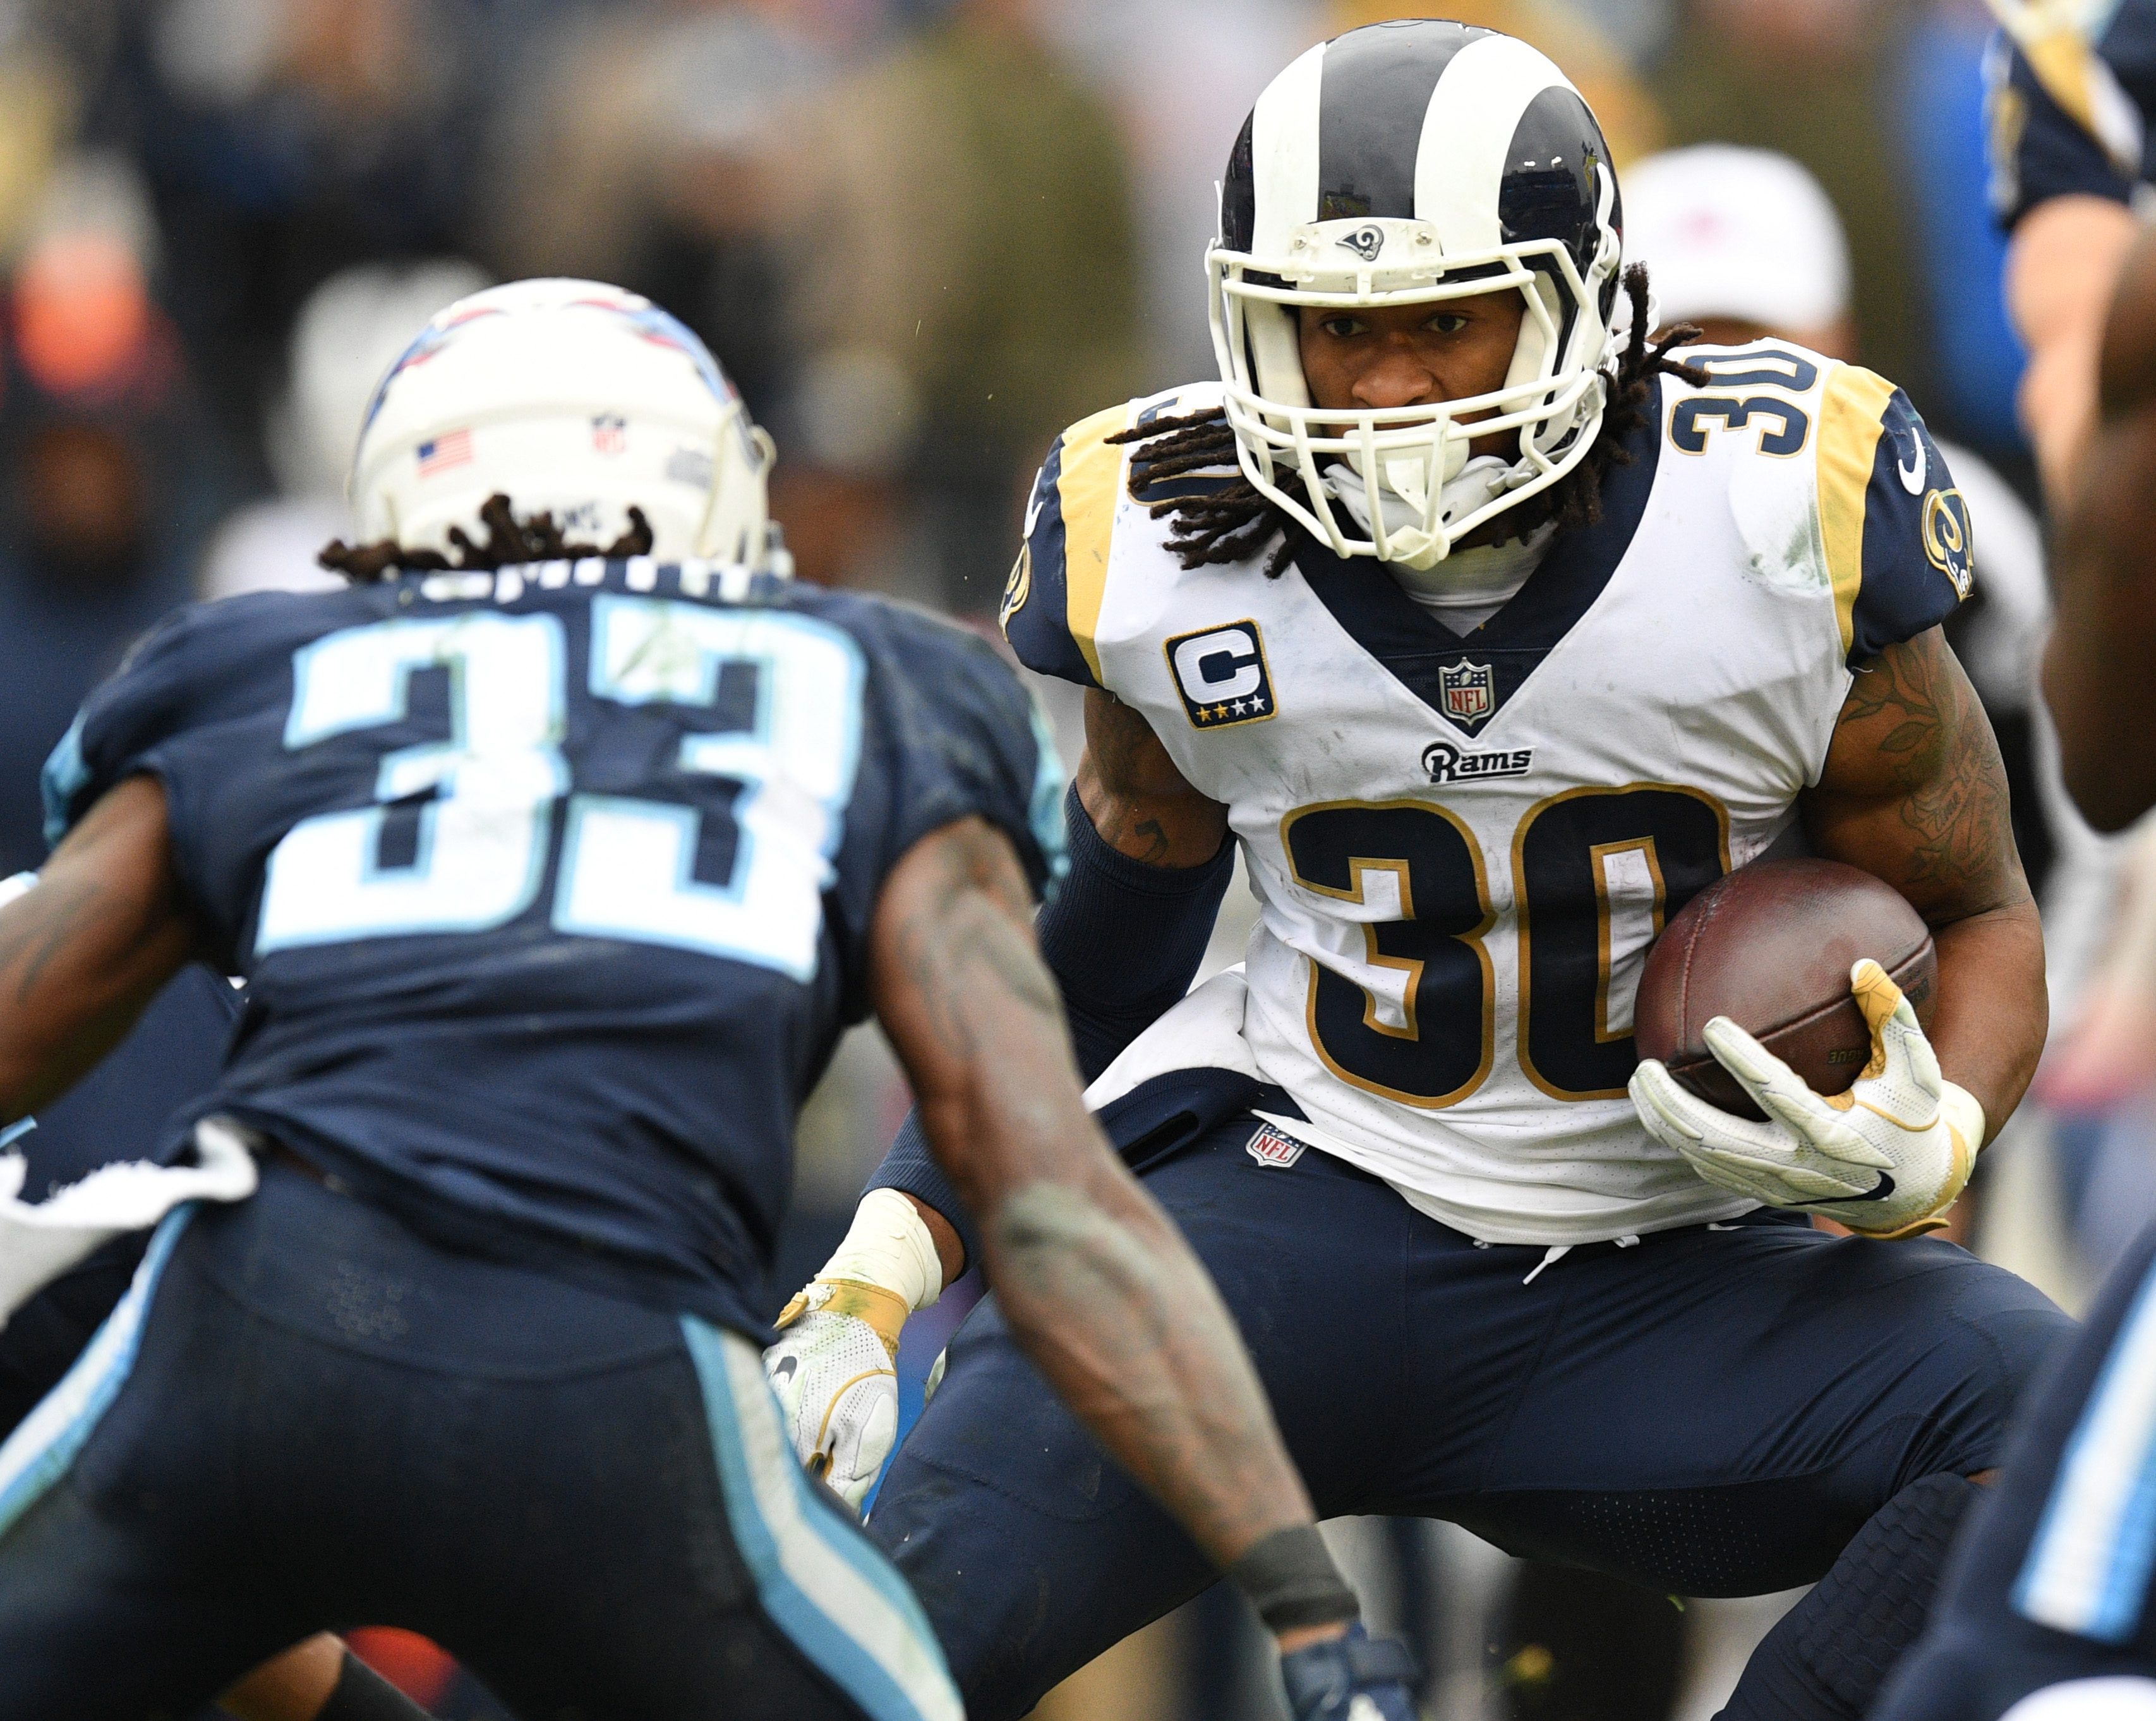 NFL: Los Angeles Rams at Tennessee Titans